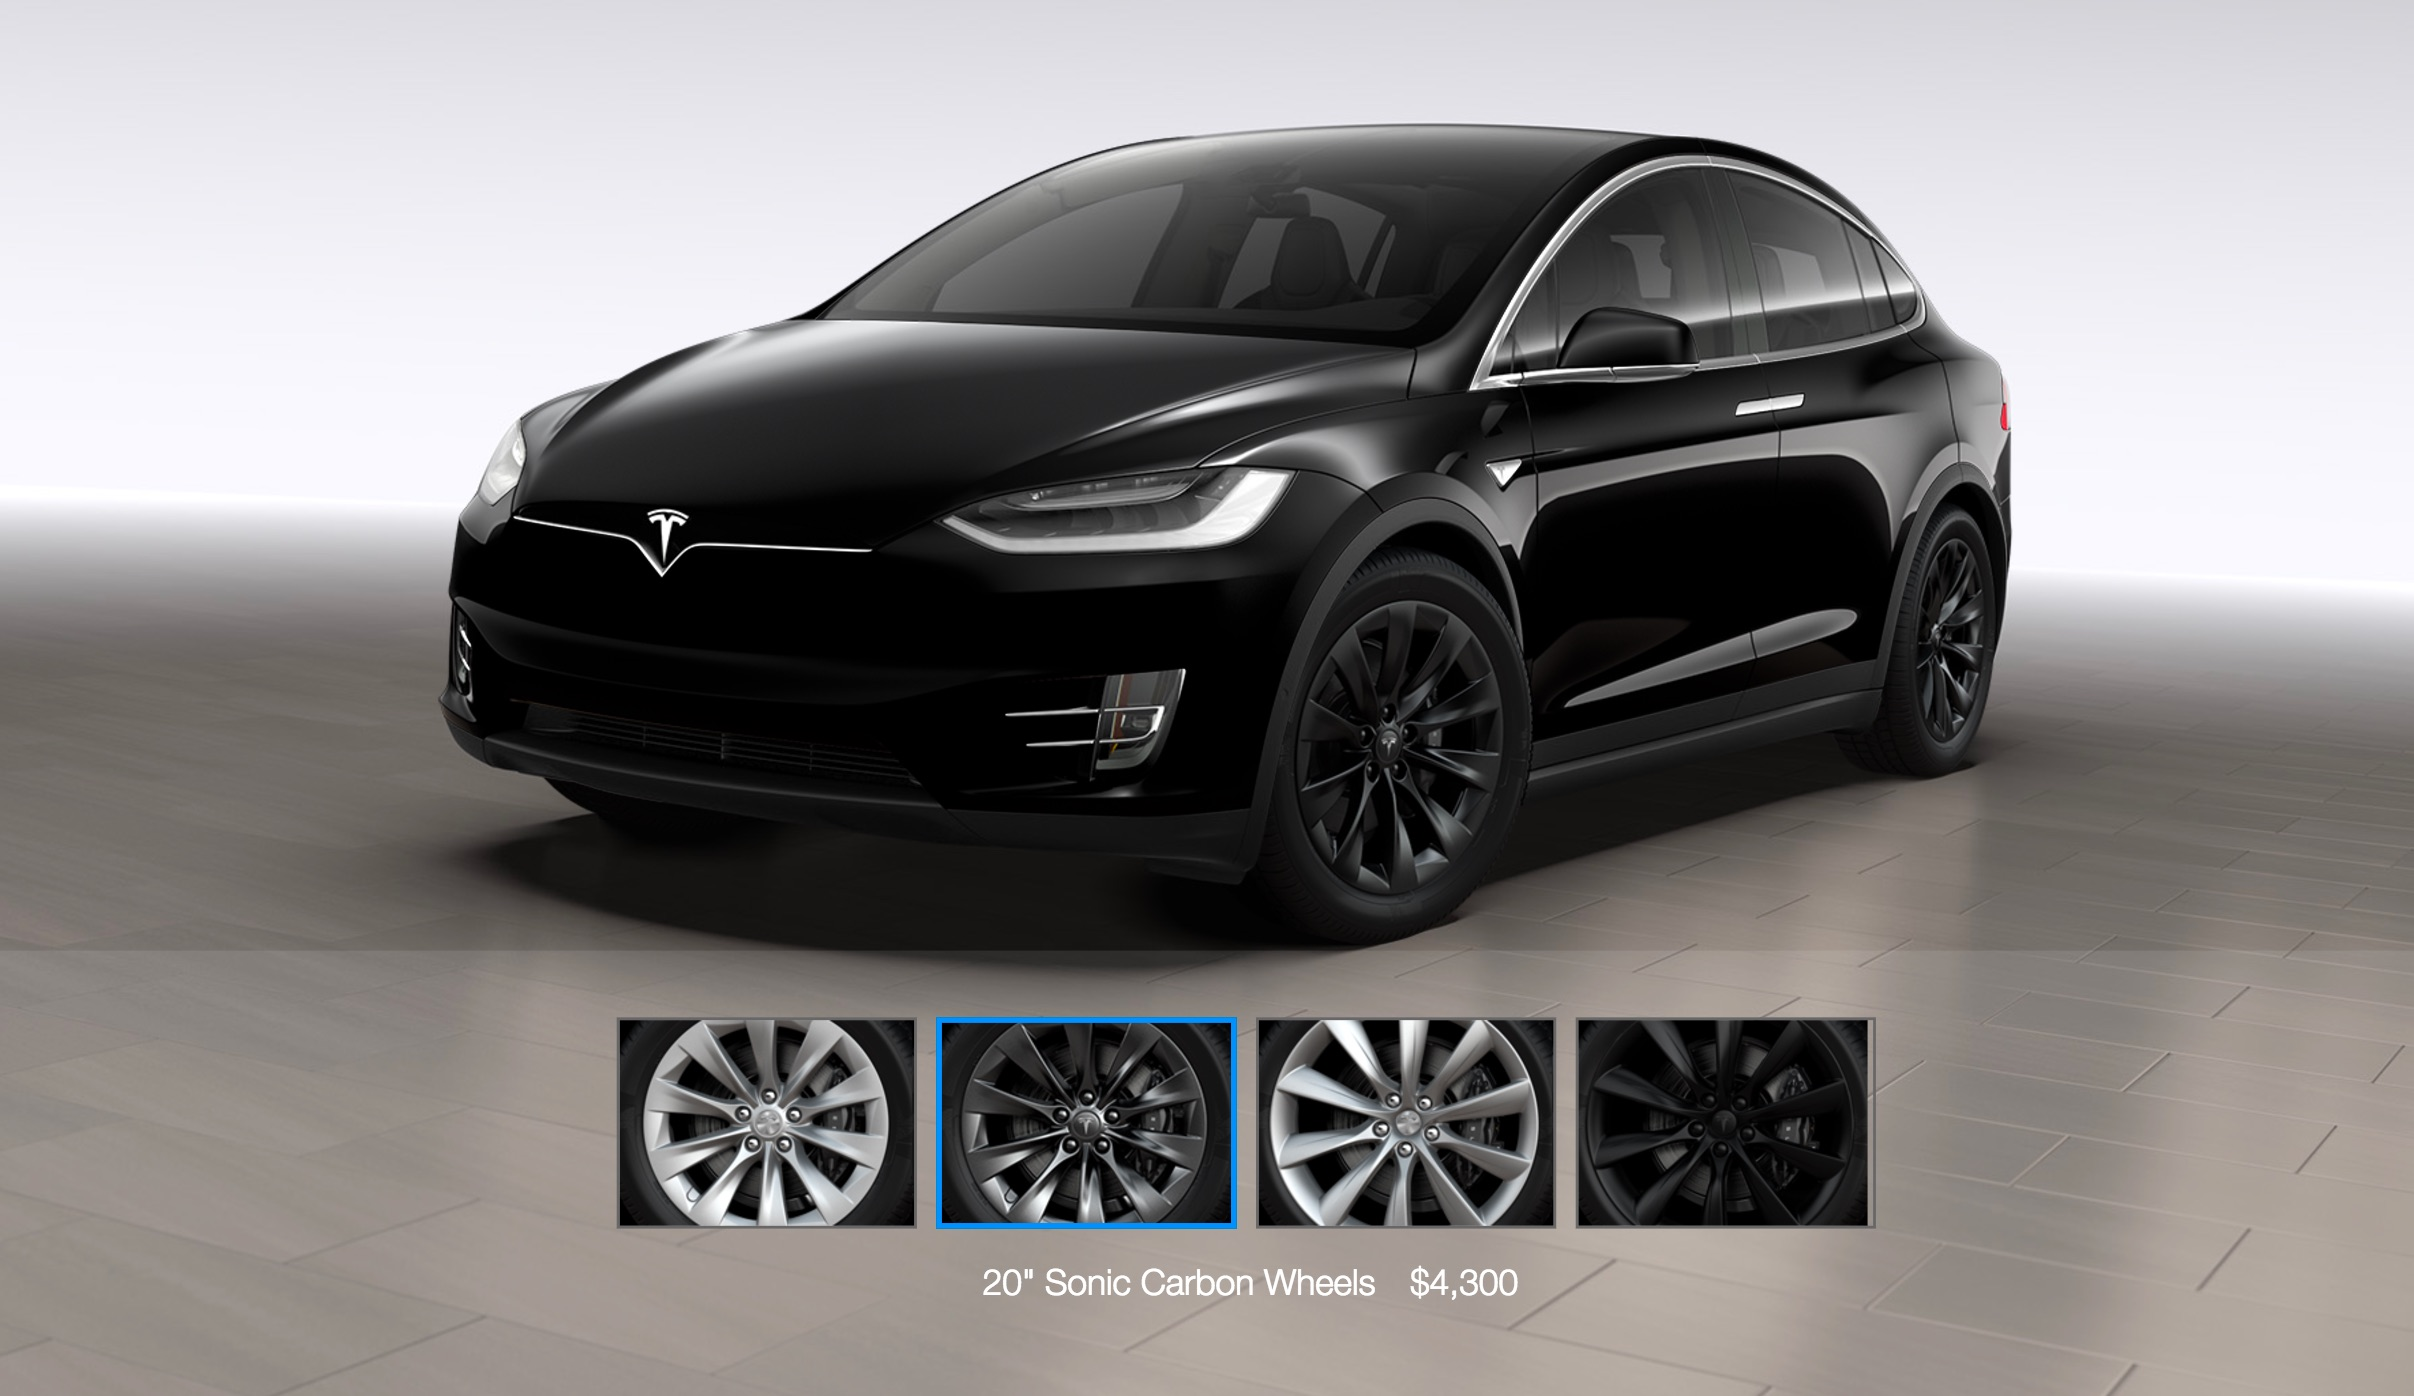 6148535110 as well Tesla Model X Gets 20 Sonic Carbon Wheel Center Console Option in addition Tesla 21 Grey Turbine New New Tires Tpms Caps Lugs Tesla Cases 235350 furthermore This New Offshore Wind Project Plans To  bine Turbines And Storage together with Watch. on tesla turbine